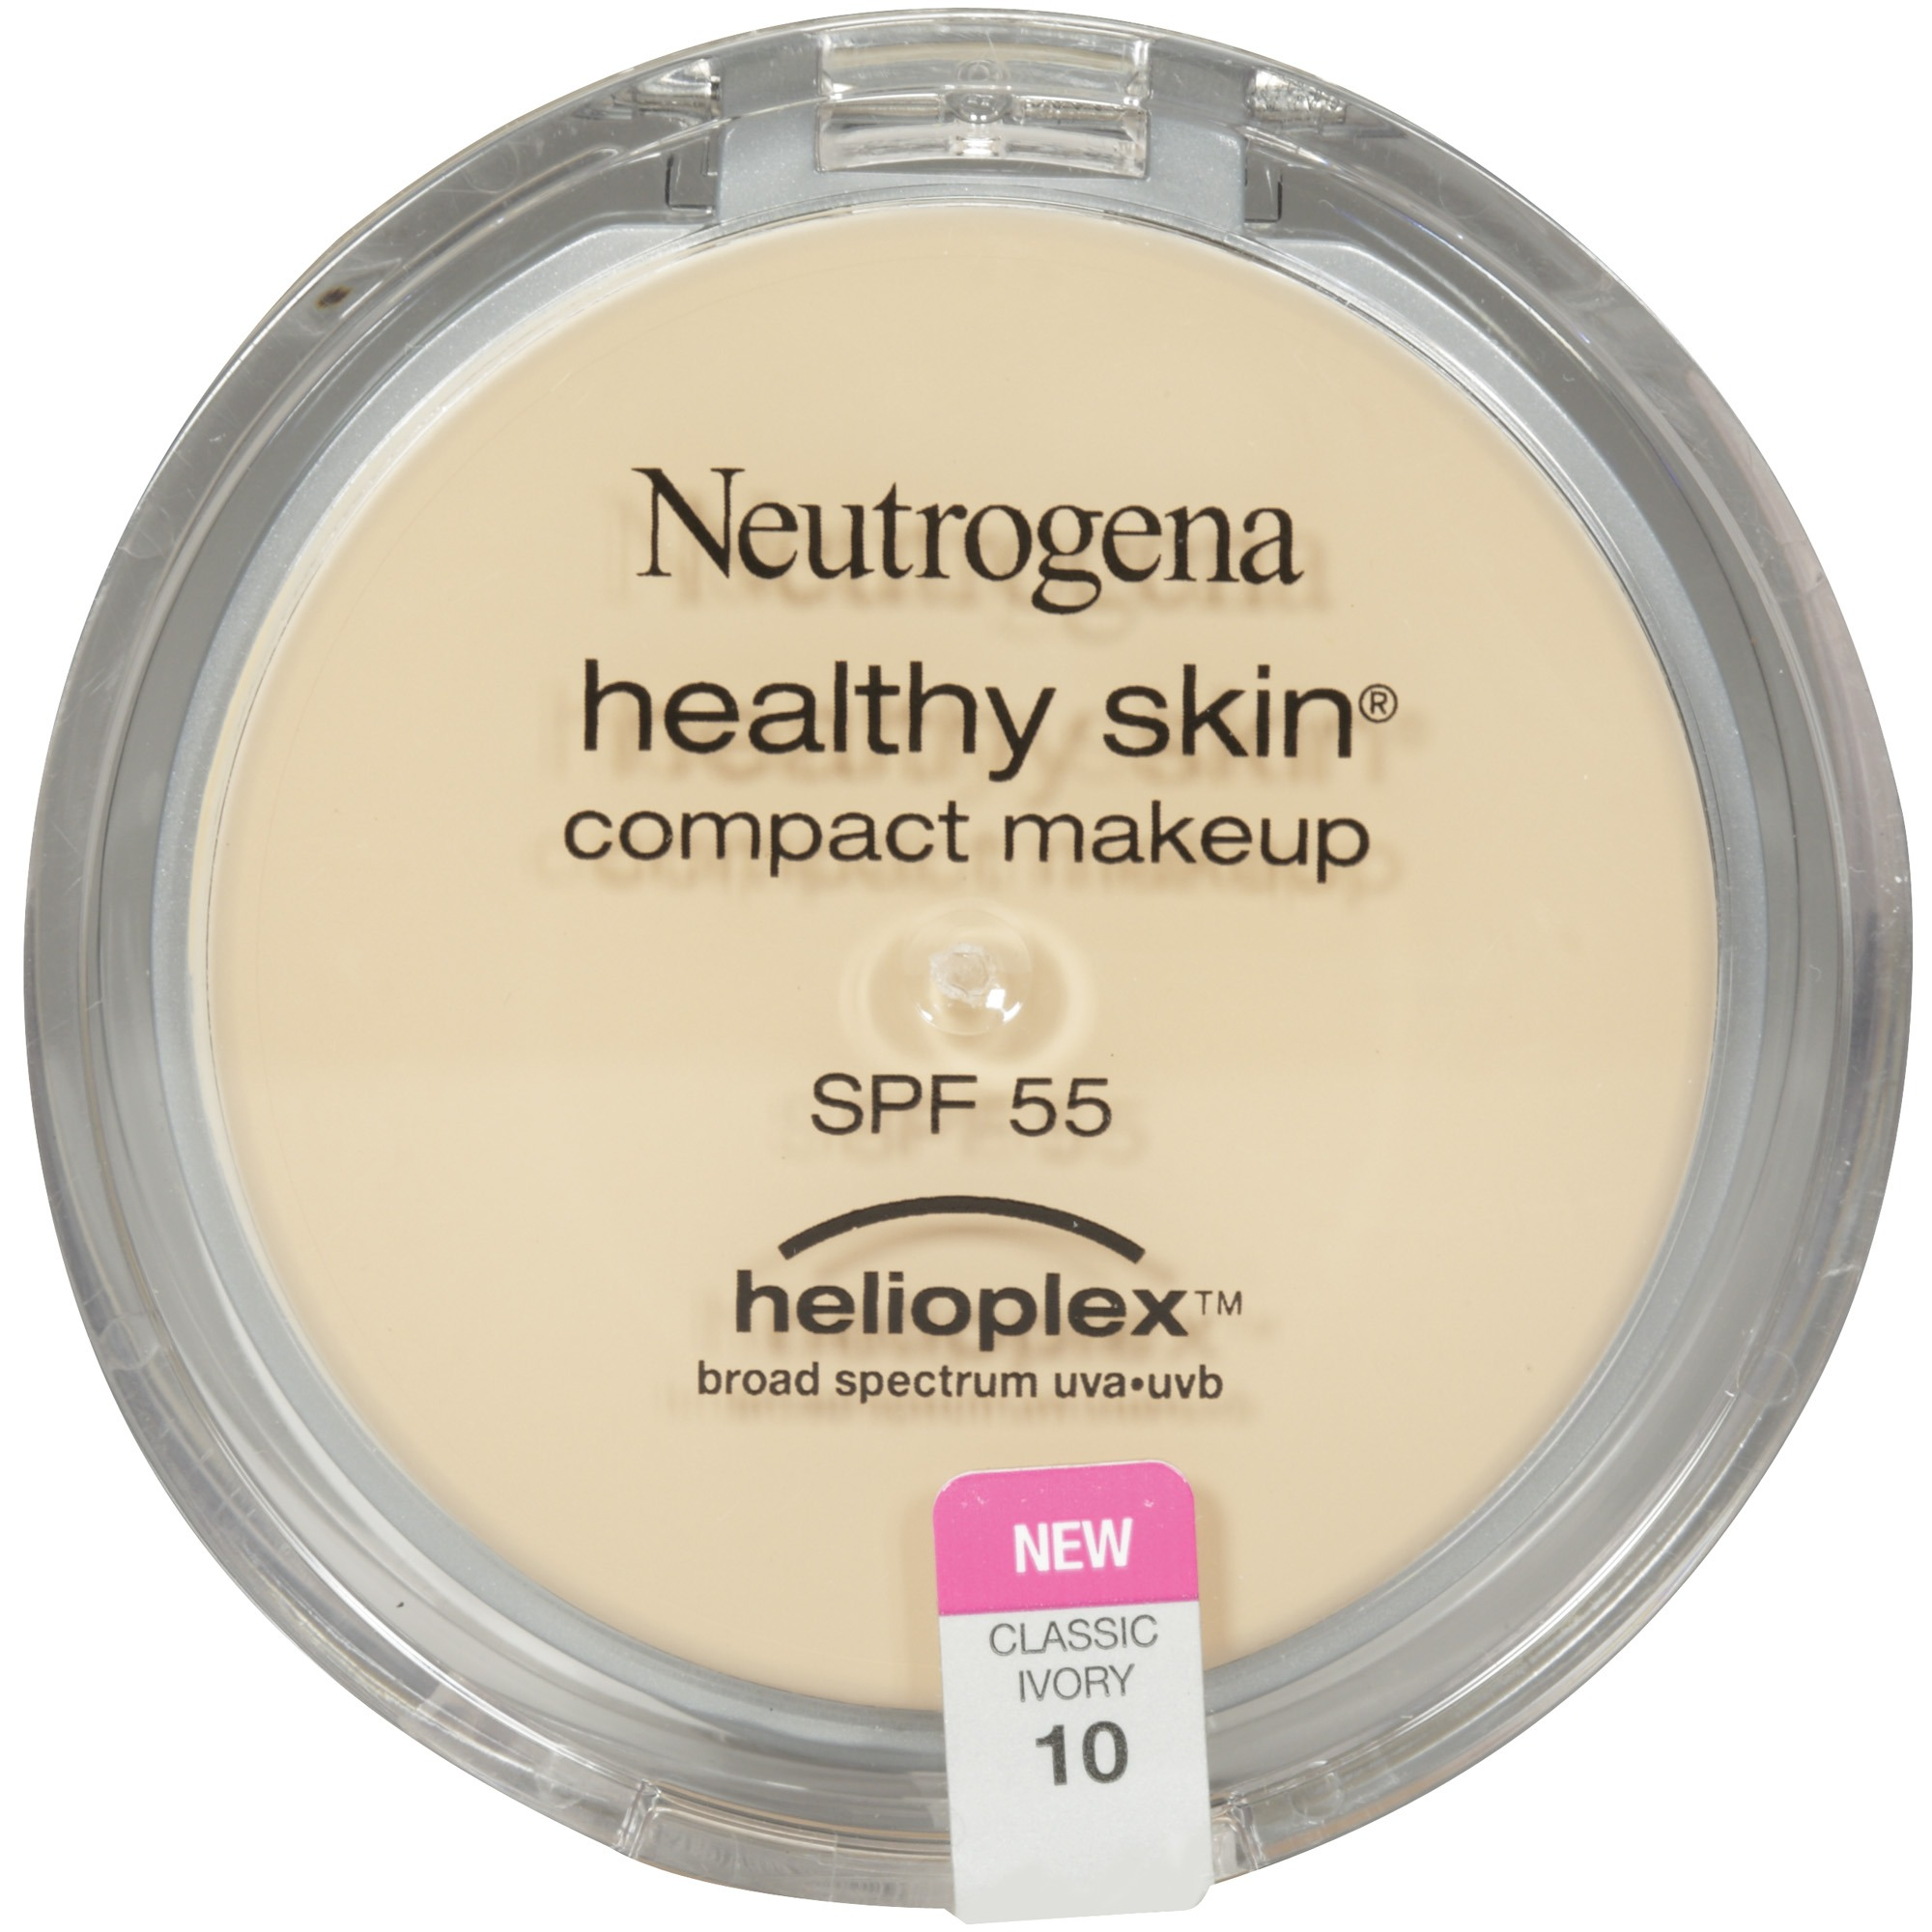 Neutrogena Healthy Skin Compact Makeup Broad Spectrum SPF 55, Classic Ivory 10, .35 Oz